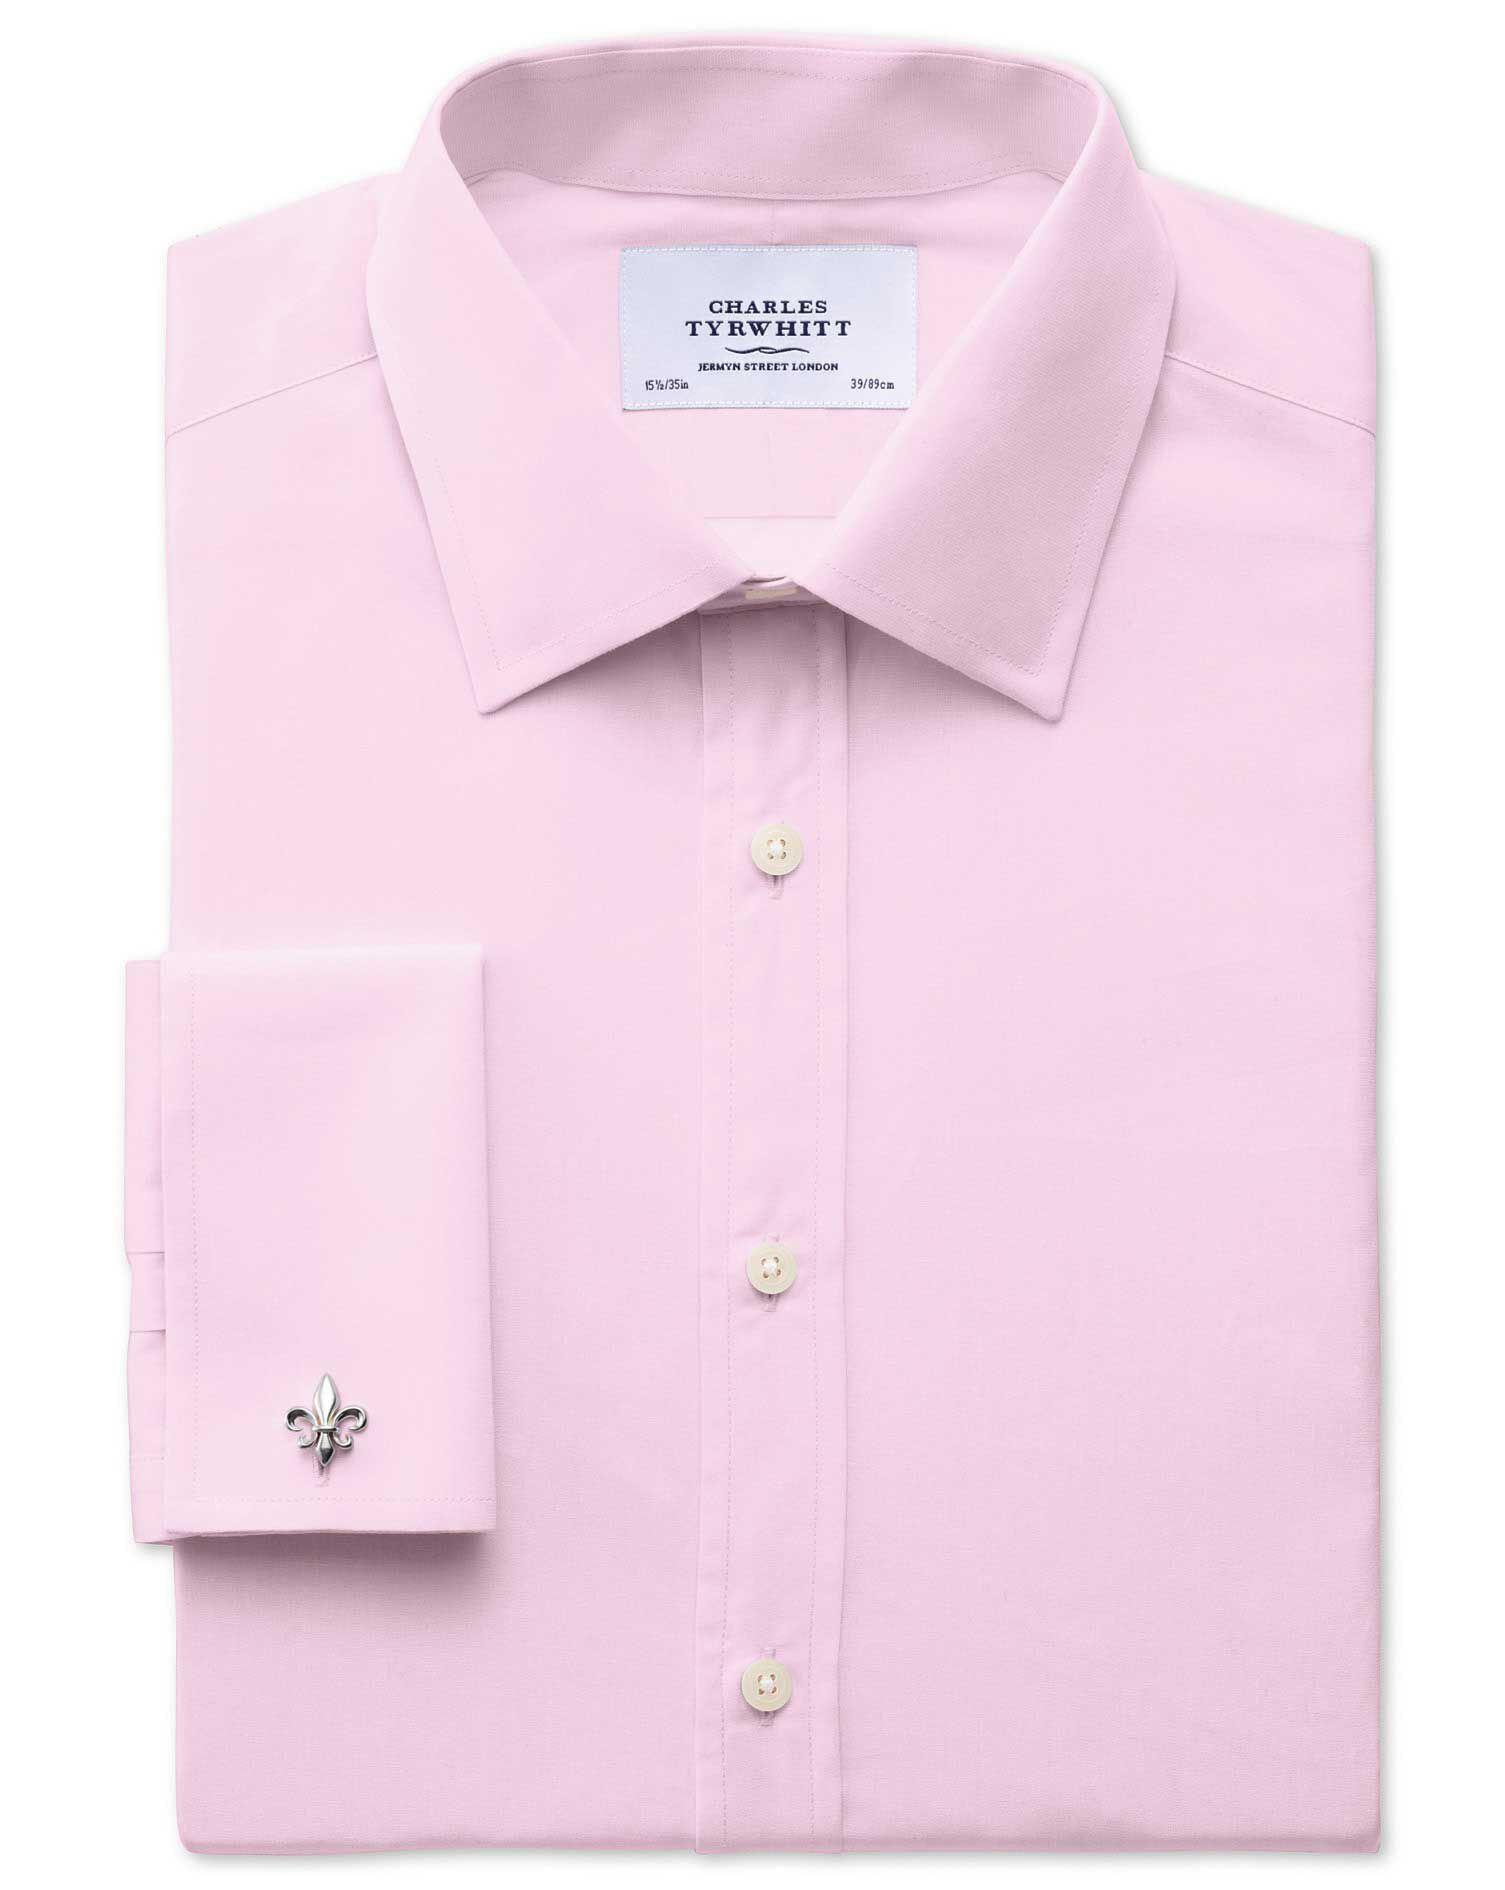 Classic Fit End-On-End Pink Cotton Formal Shirt Double Cuff Size 16.5/34 by Charles Tyrwhitt